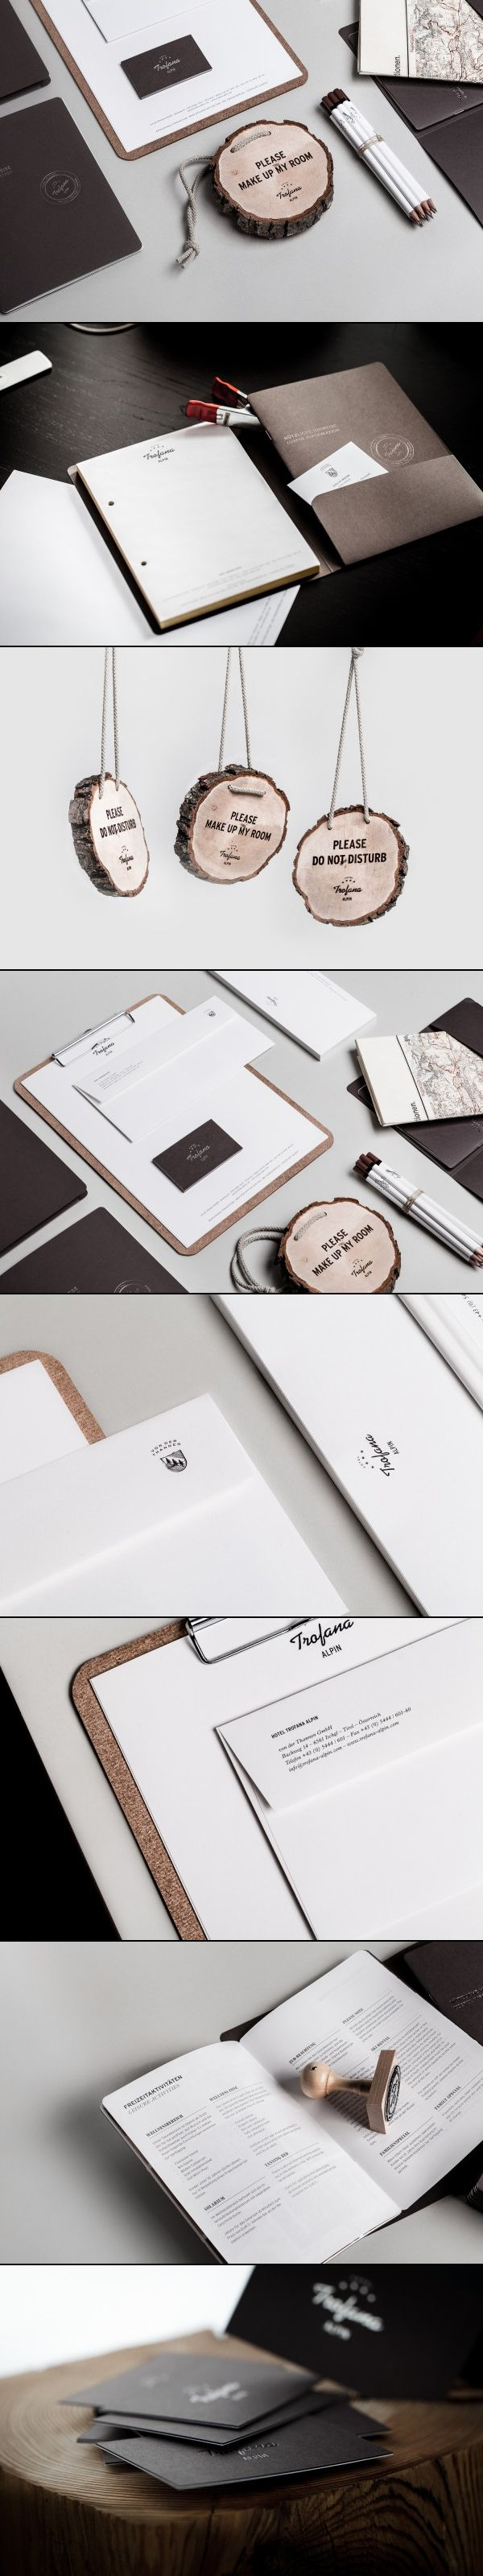 Hotel Trofana Alpin Corporate Identity via Design made in Germany.